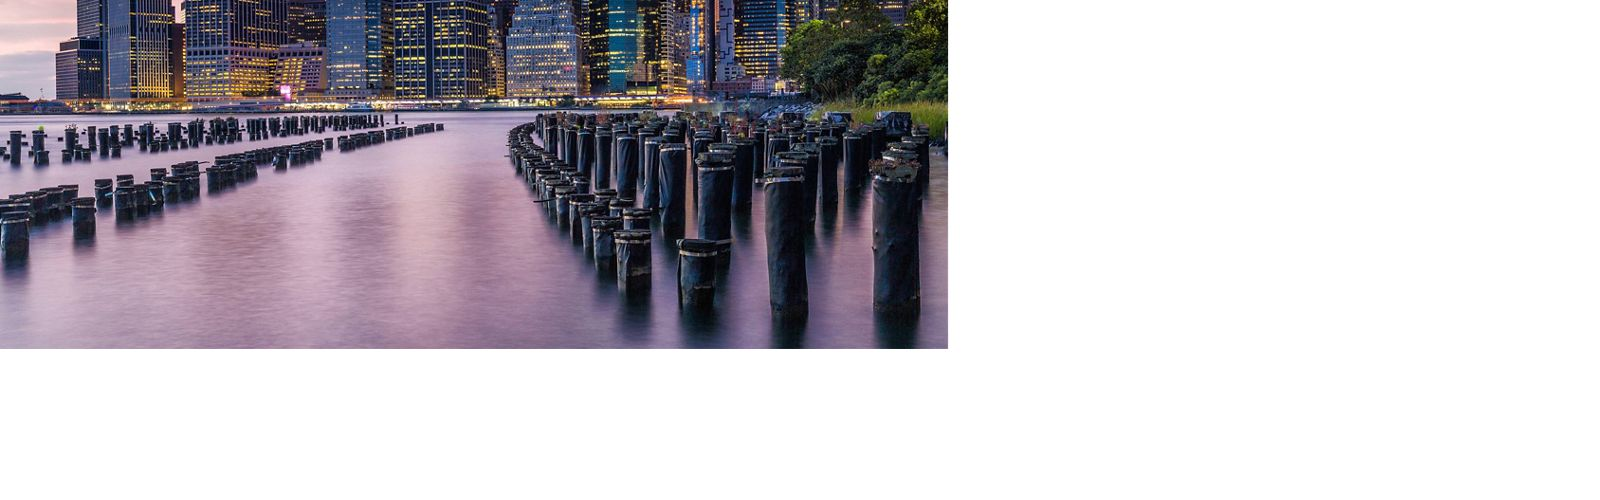 new york city manhattan skyline over east river with dock poles and bulkheads